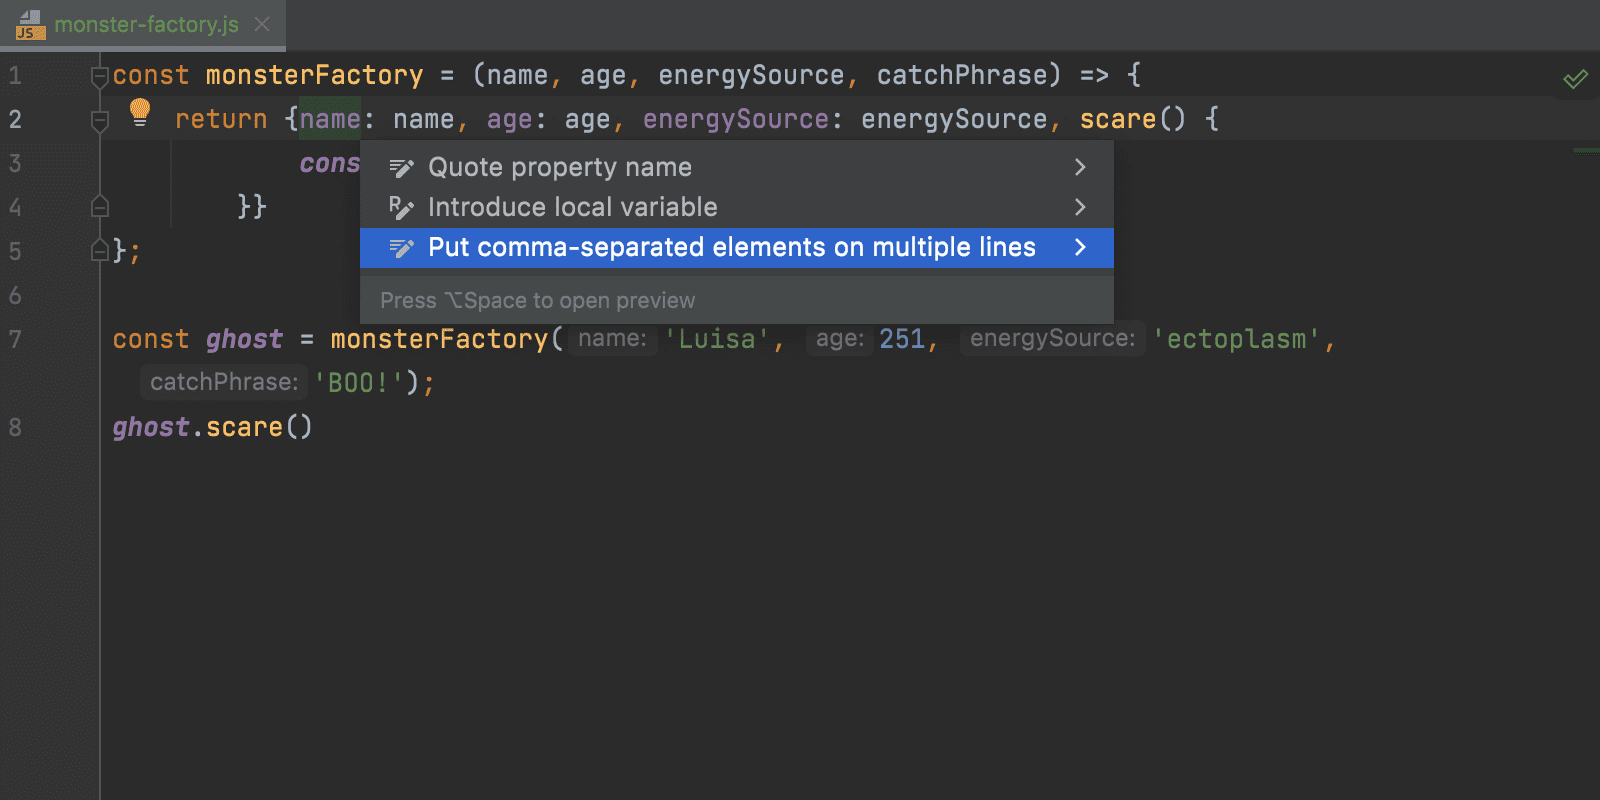 intention-for-putting-elements-on-separate-lines-and-back-webstorm